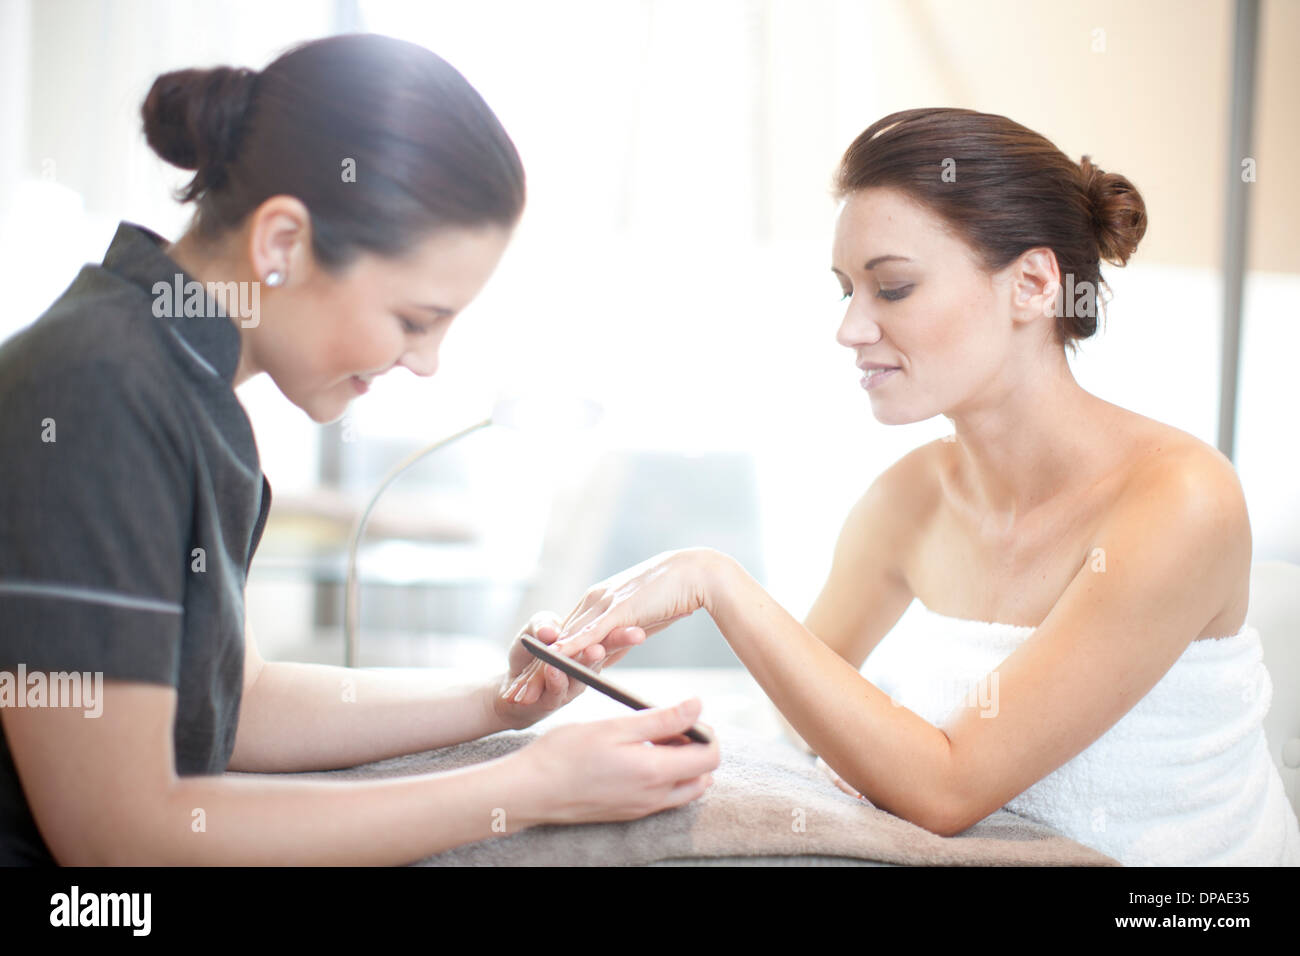 Woman having her nails done in spa treatment room - Stock Image